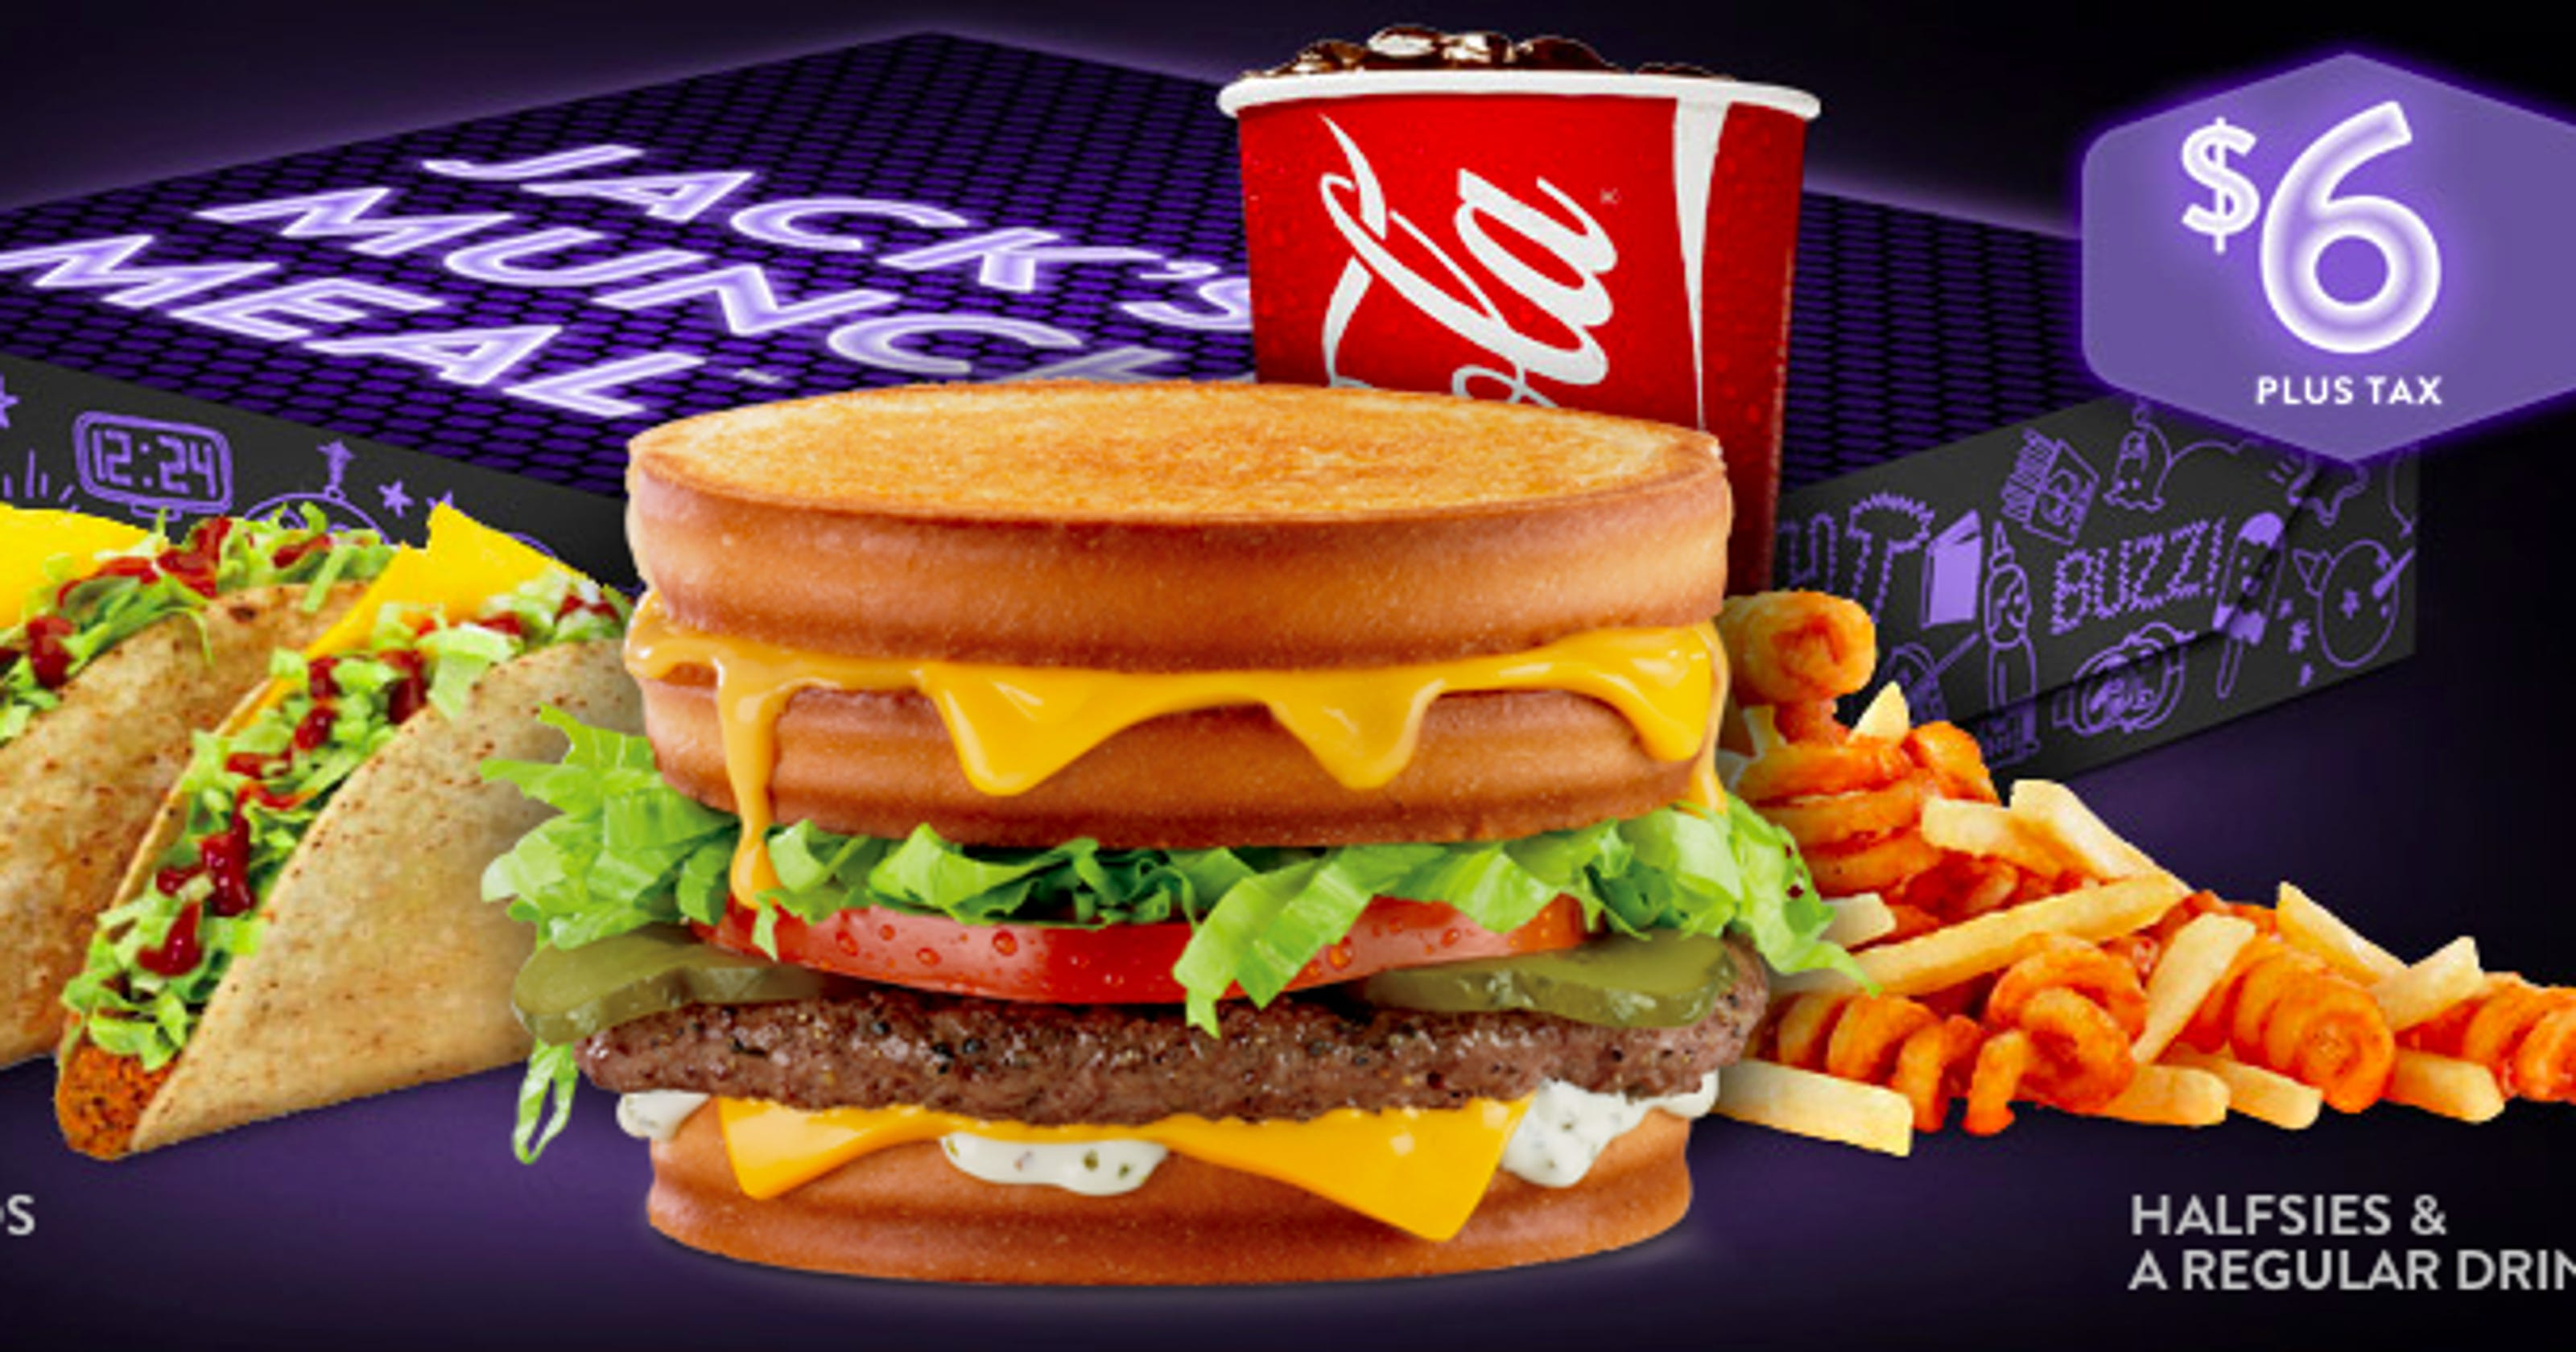 late-night munchies go wild at jack in the box